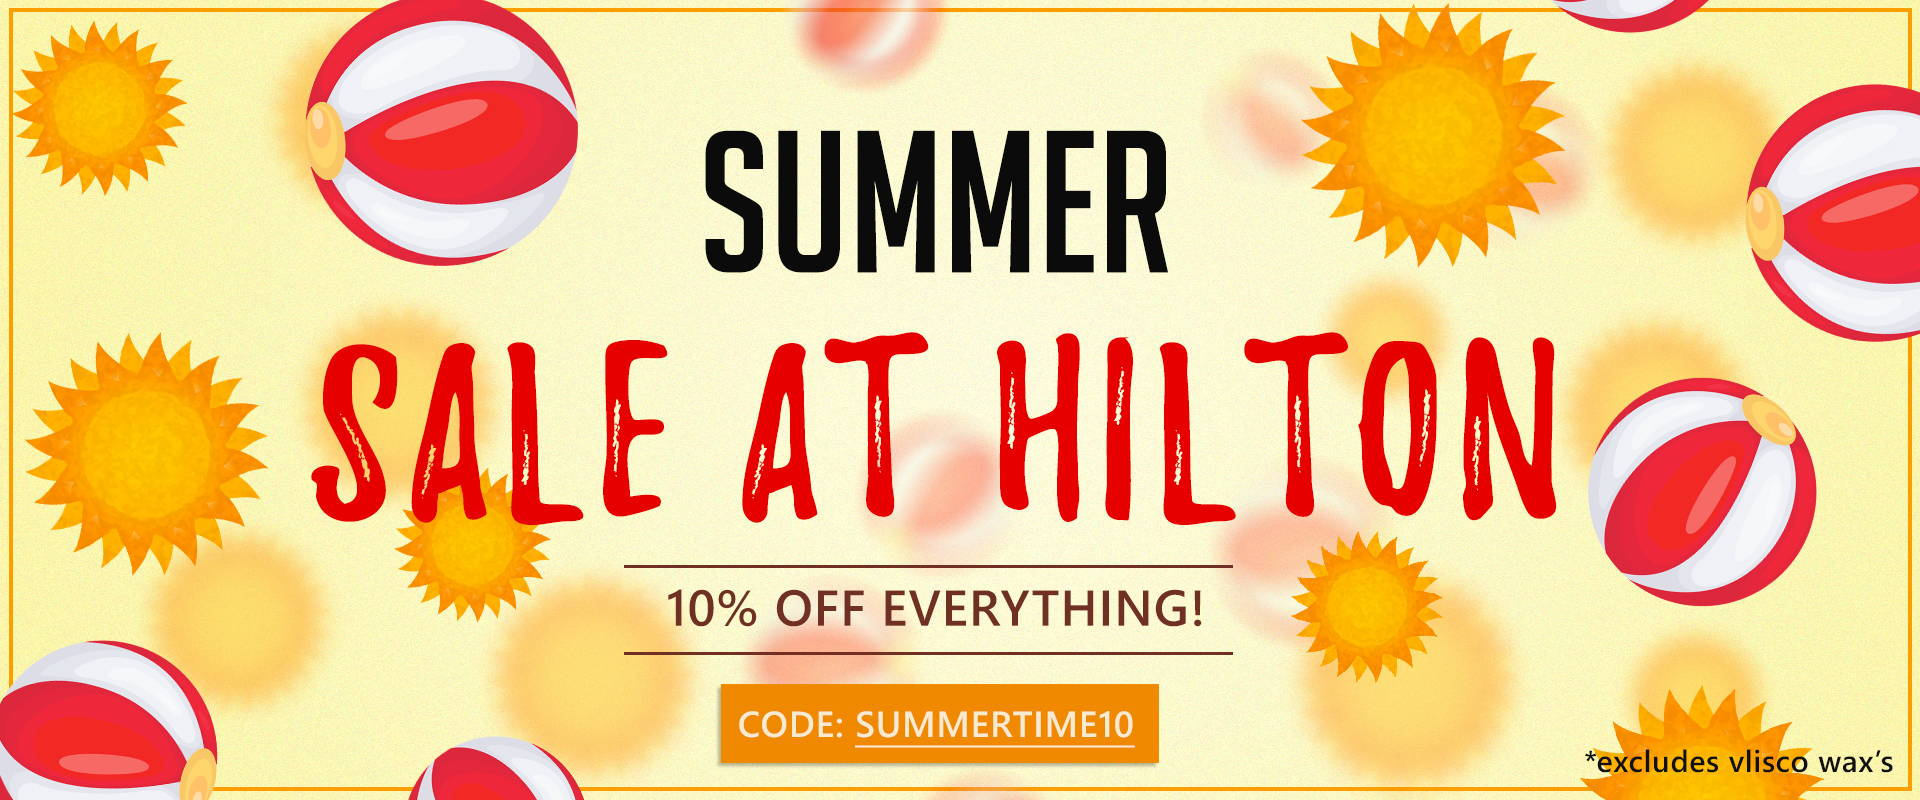 summer sale at hilton textiles. code is summertime10